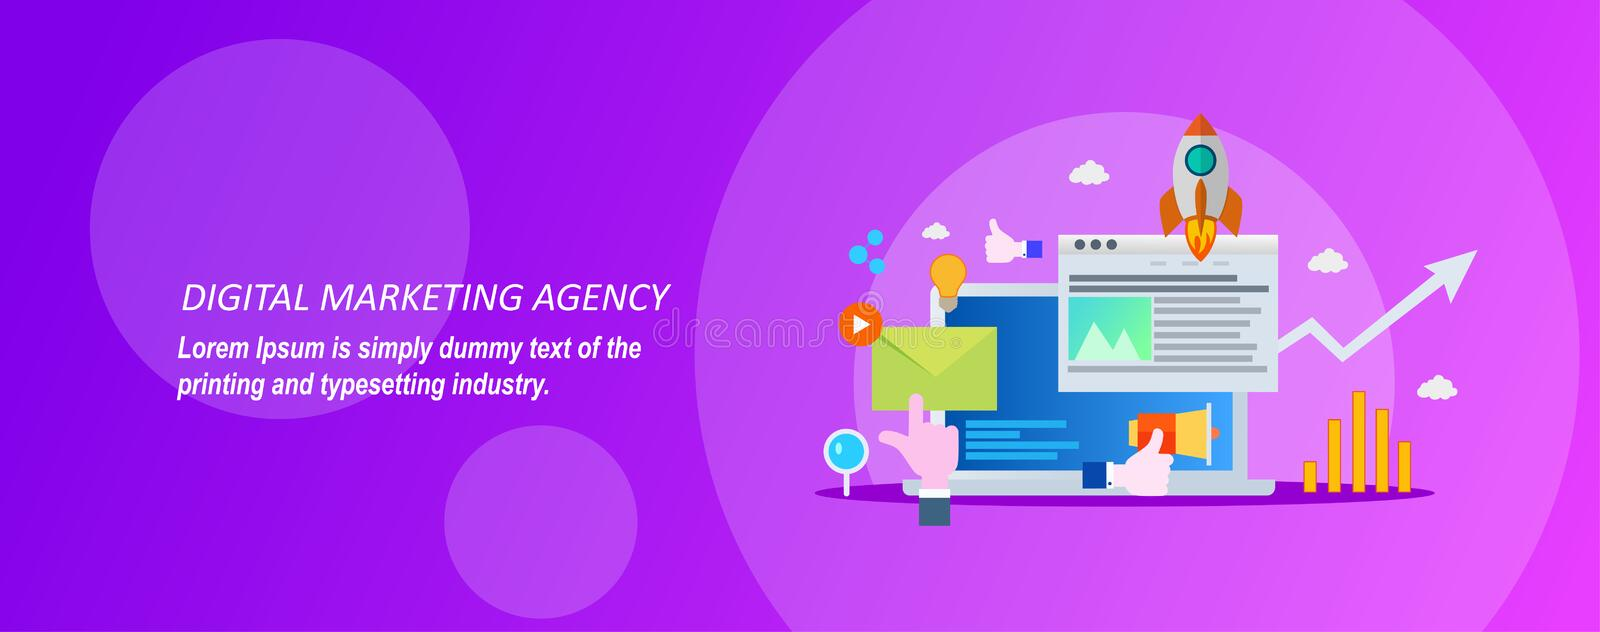 Concept for digital marketing agency on a violet background. Concept for Digital marketing agency, digital media campaign flat vector illustration with icons stock illustration